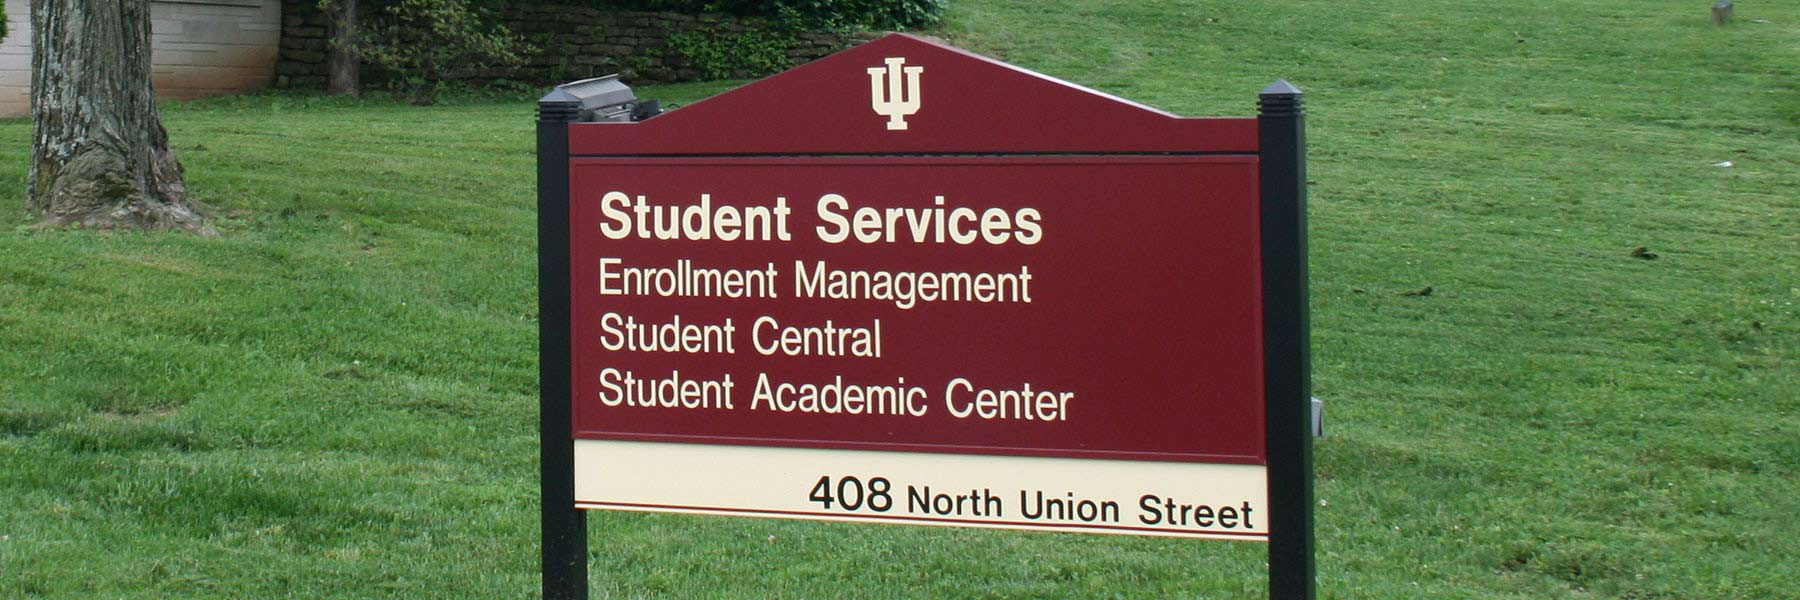 Student Services Building location signage.